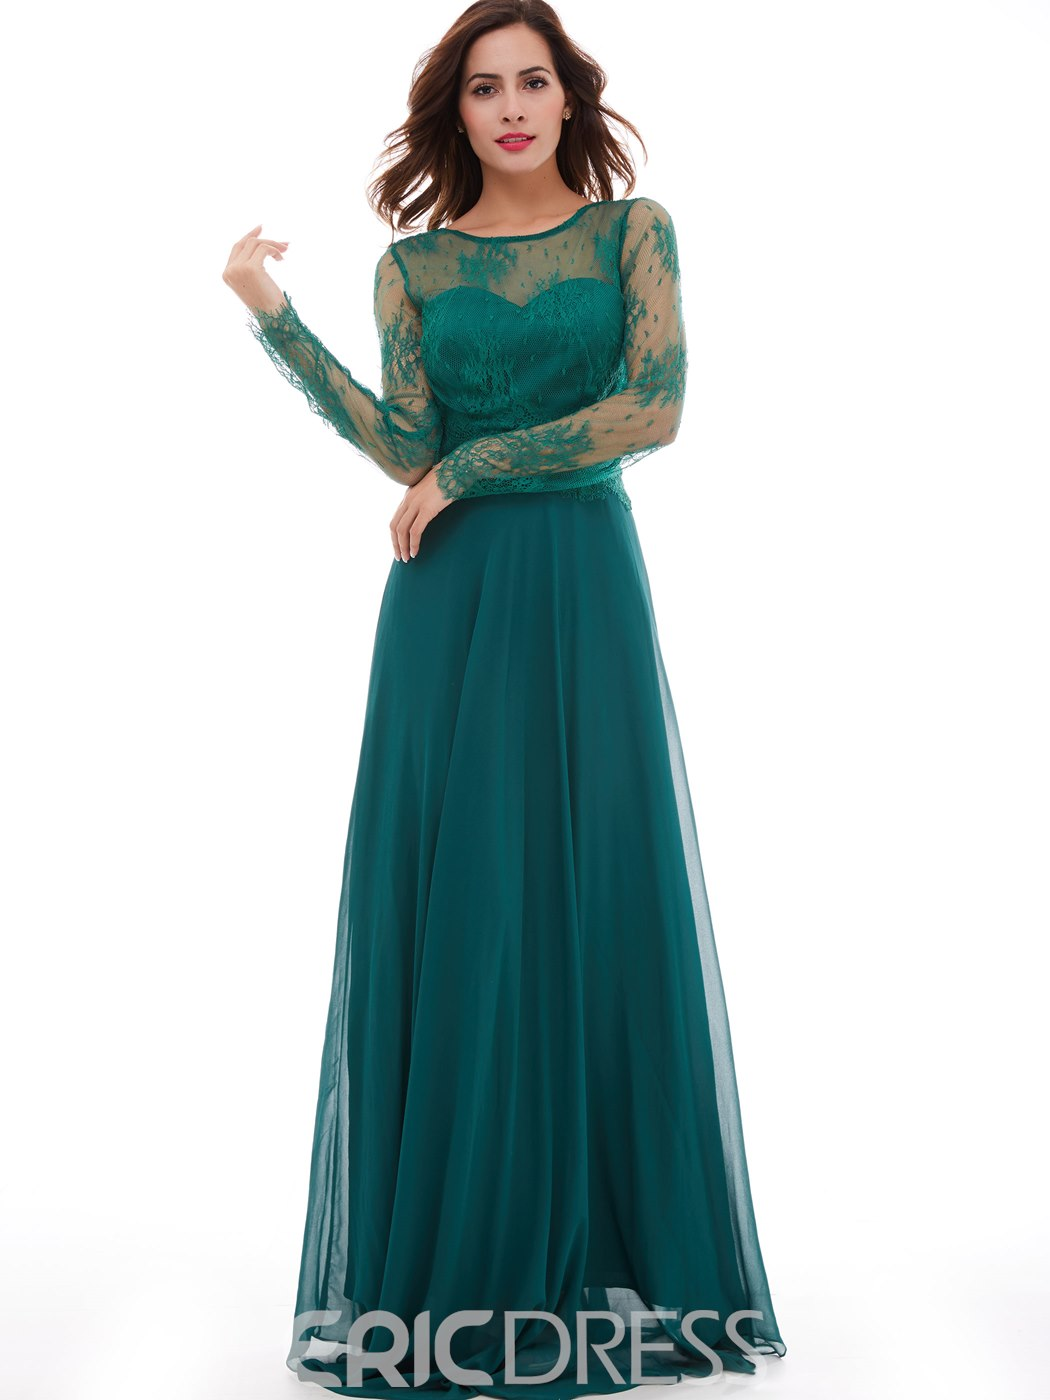 Ericdress A-Line Bateau Long Sleeves Lace Floor-Length Evening Dress